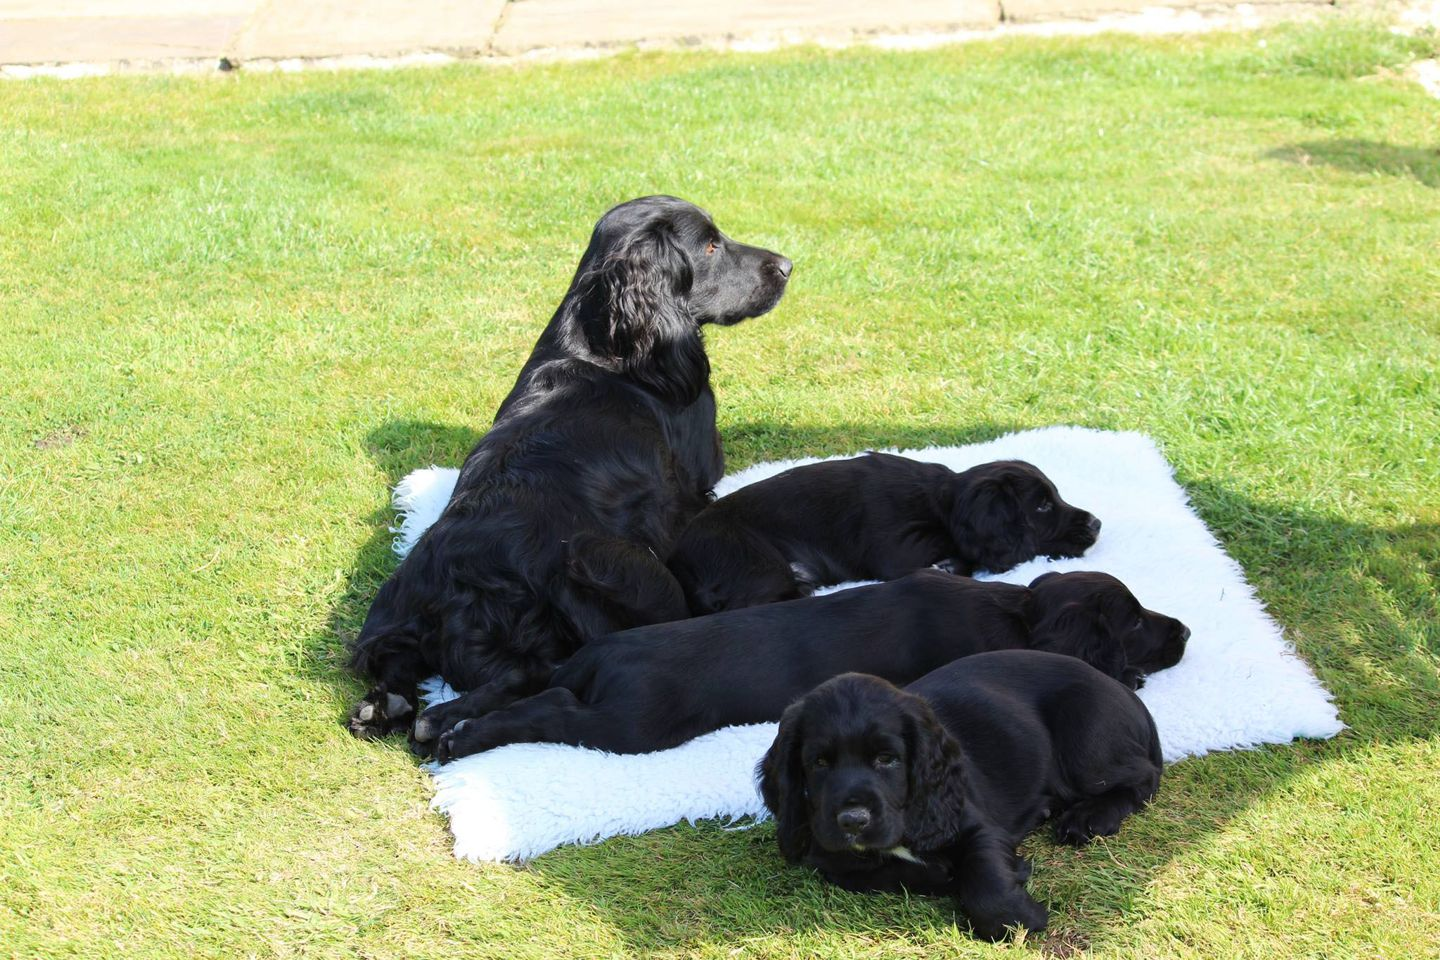 Penny, Nelson, Smiffy and Bramble